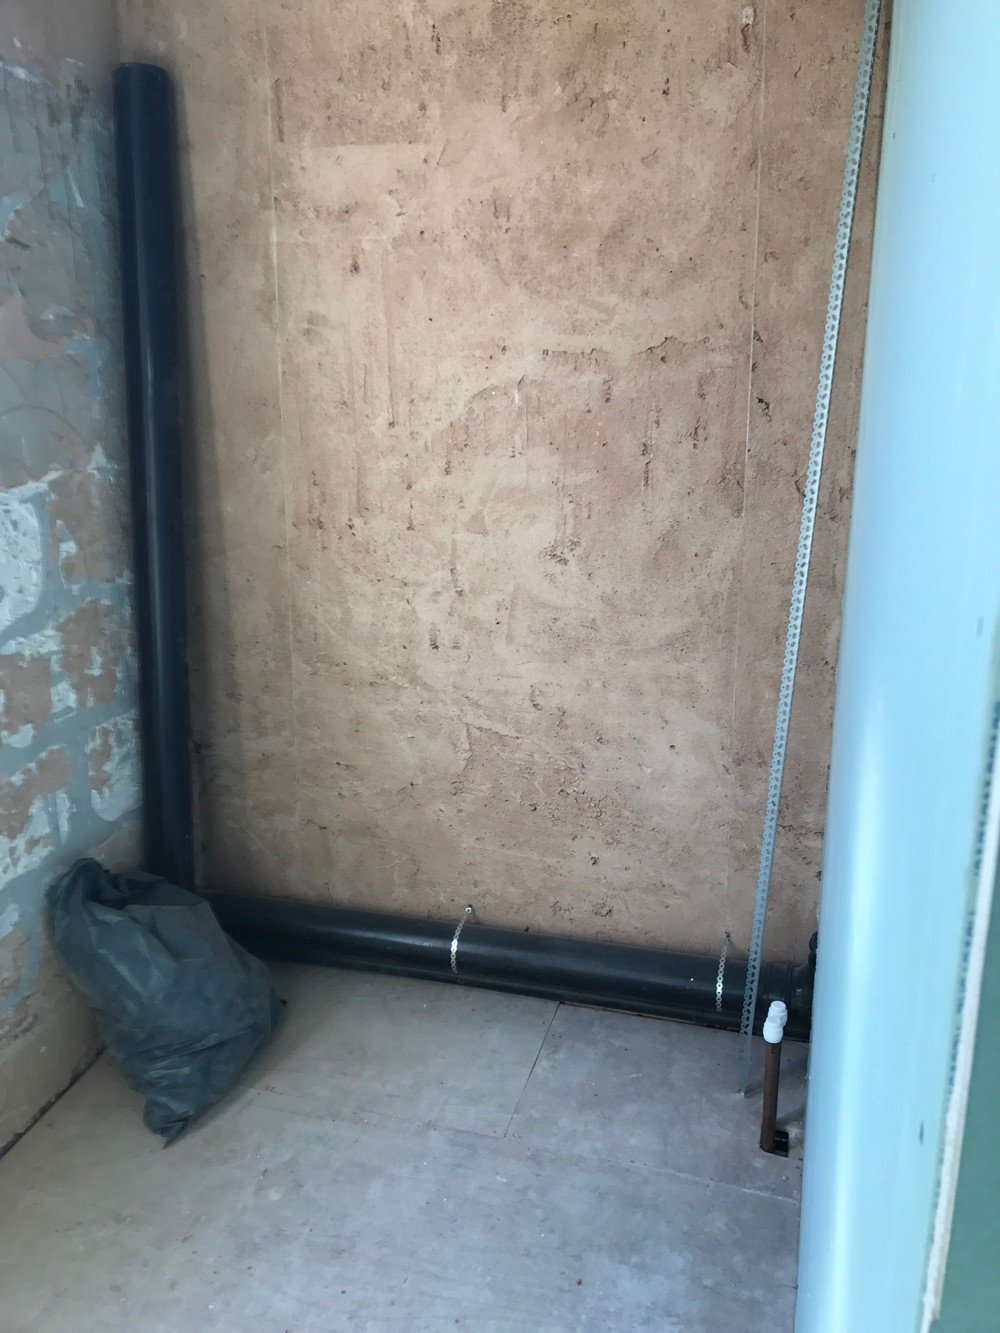 SW1V – Bathrooms, Kitchen, Flooring, Painting Decorating, Steels 5